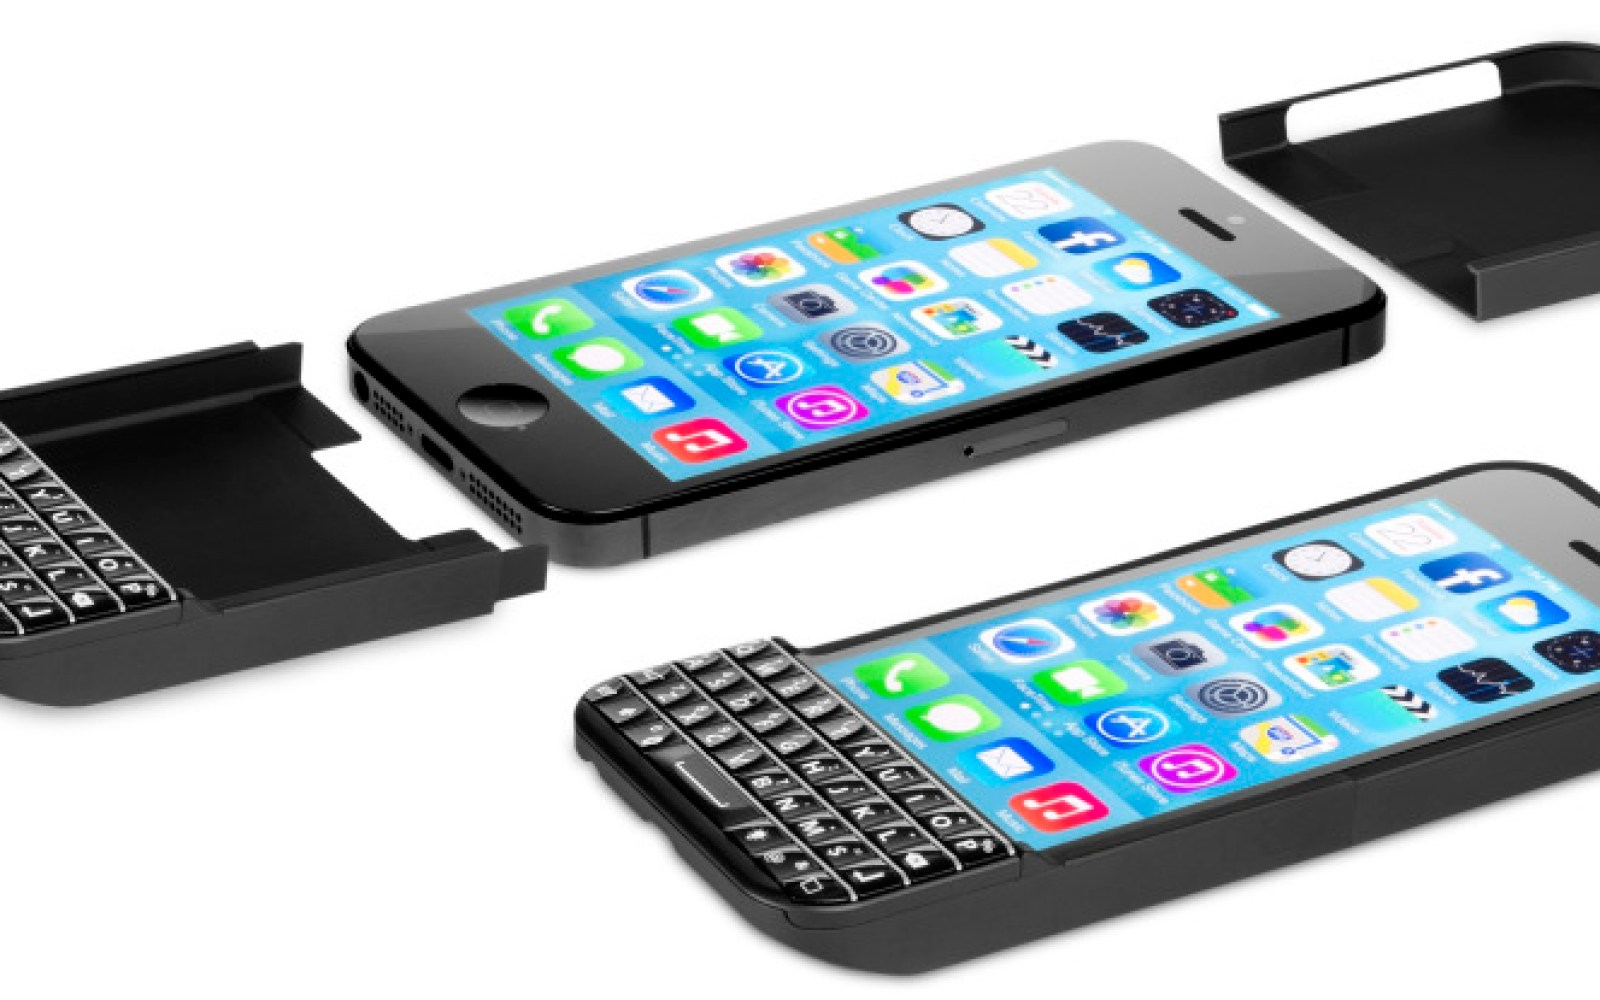 The smartphone's physical keyboard makes a last stand